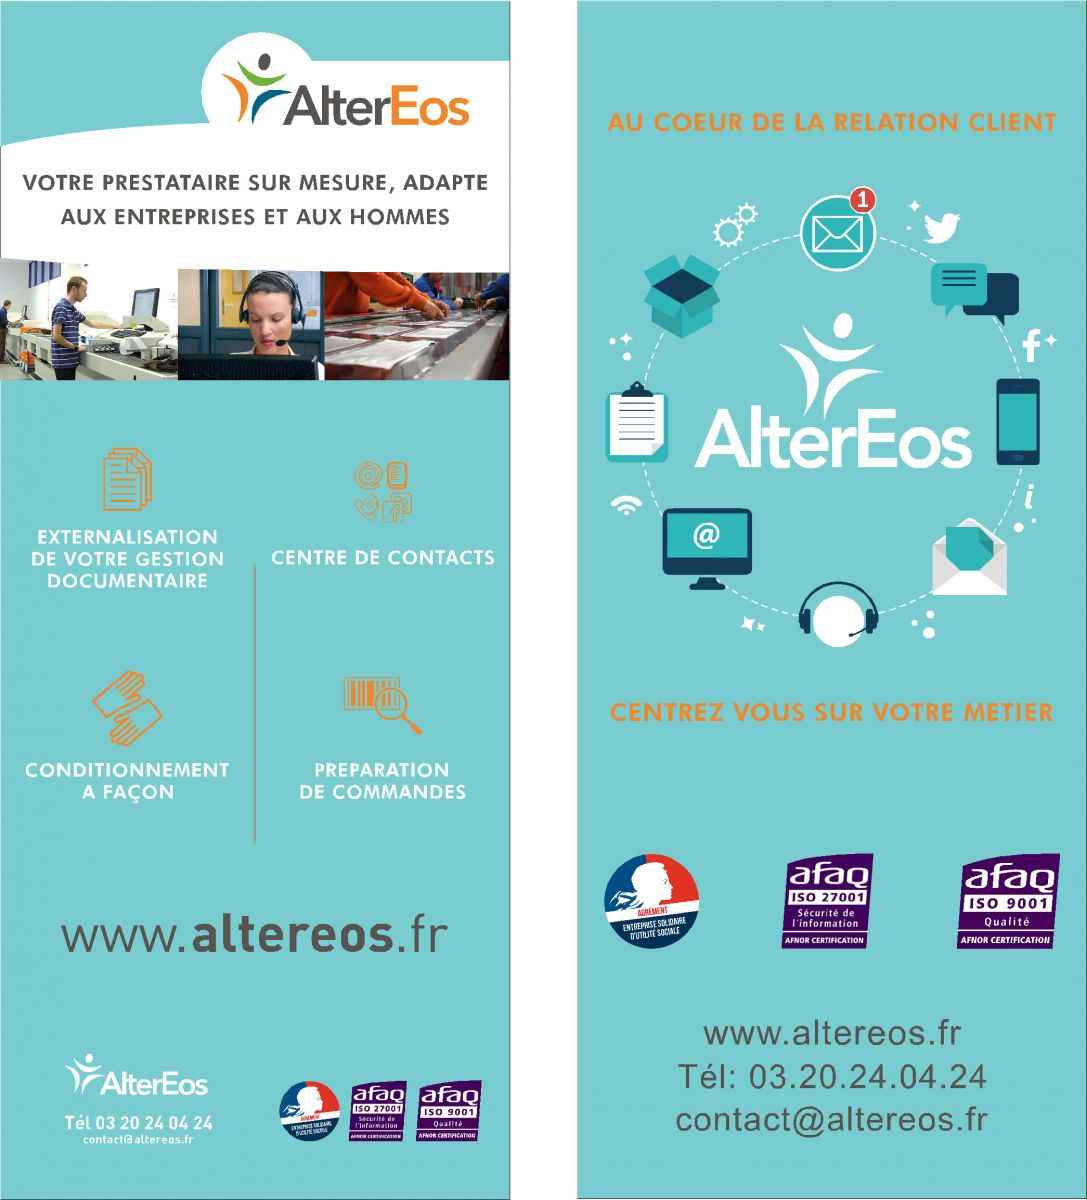 ESAT ALTEREOS (ESAT), 59200 Tourcoing (Nord)